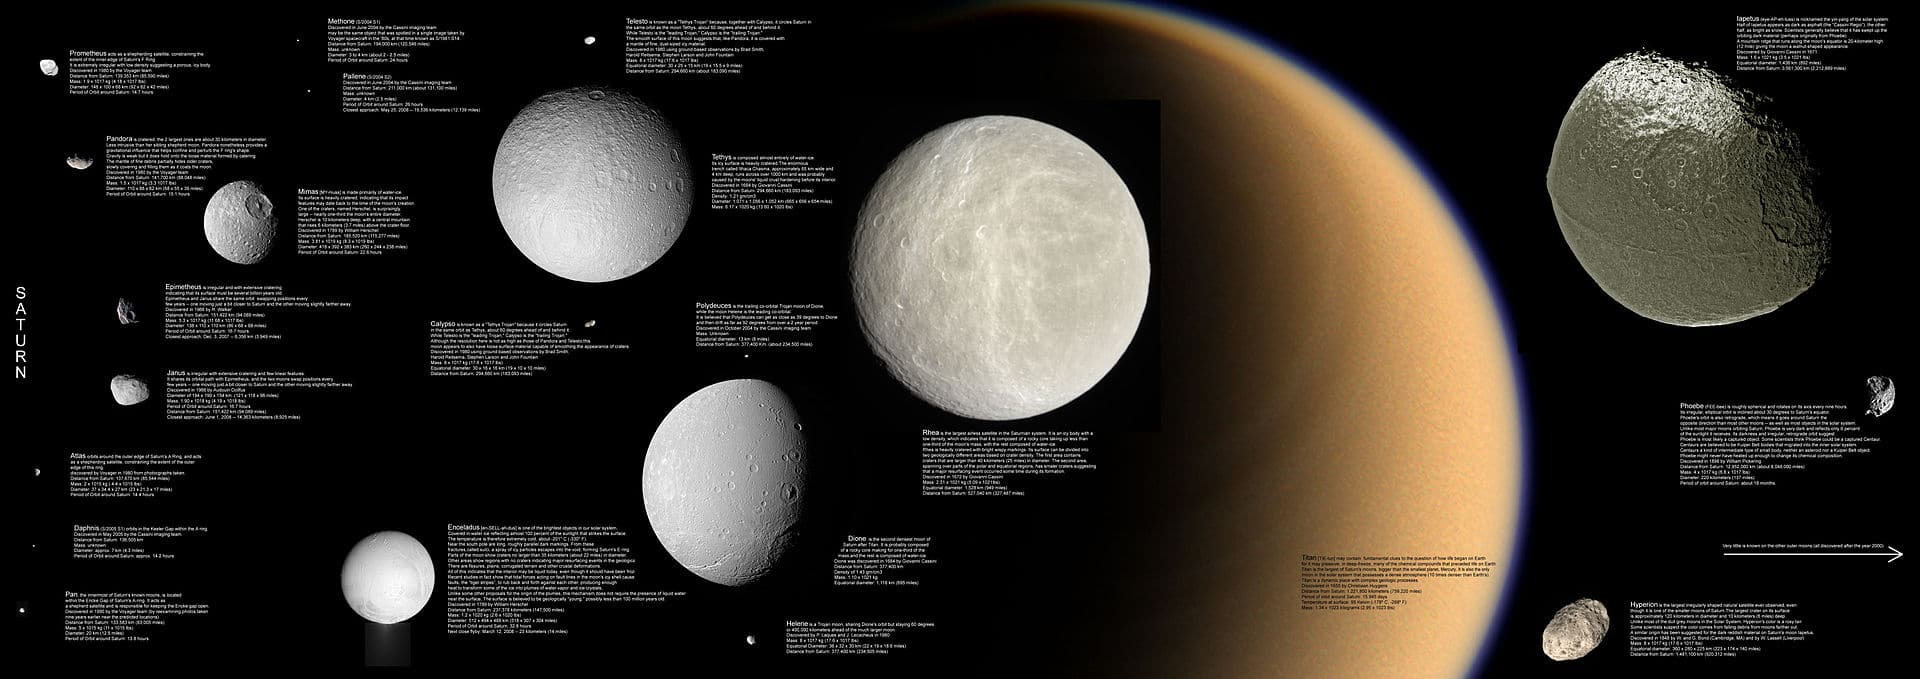 The moons of Saturn, from left to right: Mimas, Enceladus, Tethys, Dione, Rhea; Titan in the background; Iapetus (top) and irregularly shaped Hyperion (bottom). Credit: NASA/JPL/Space Science Institute